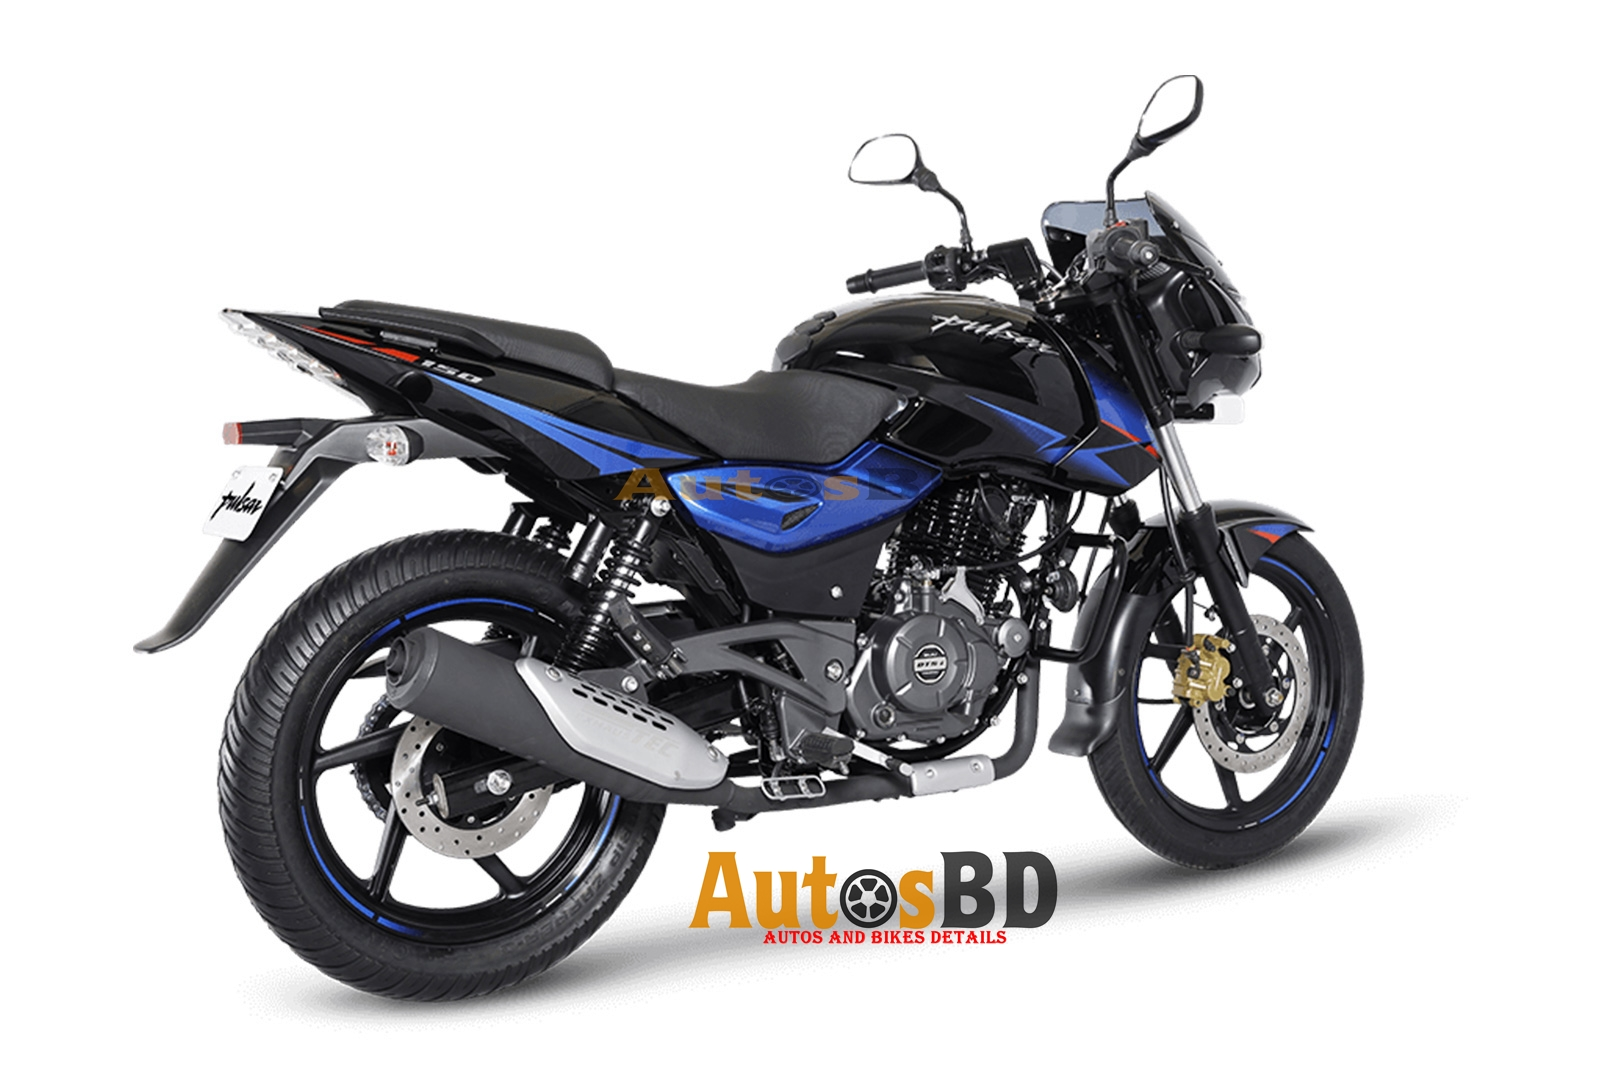 Bajaj Pulsar 150 Twin Disc Motorcycle Price in India